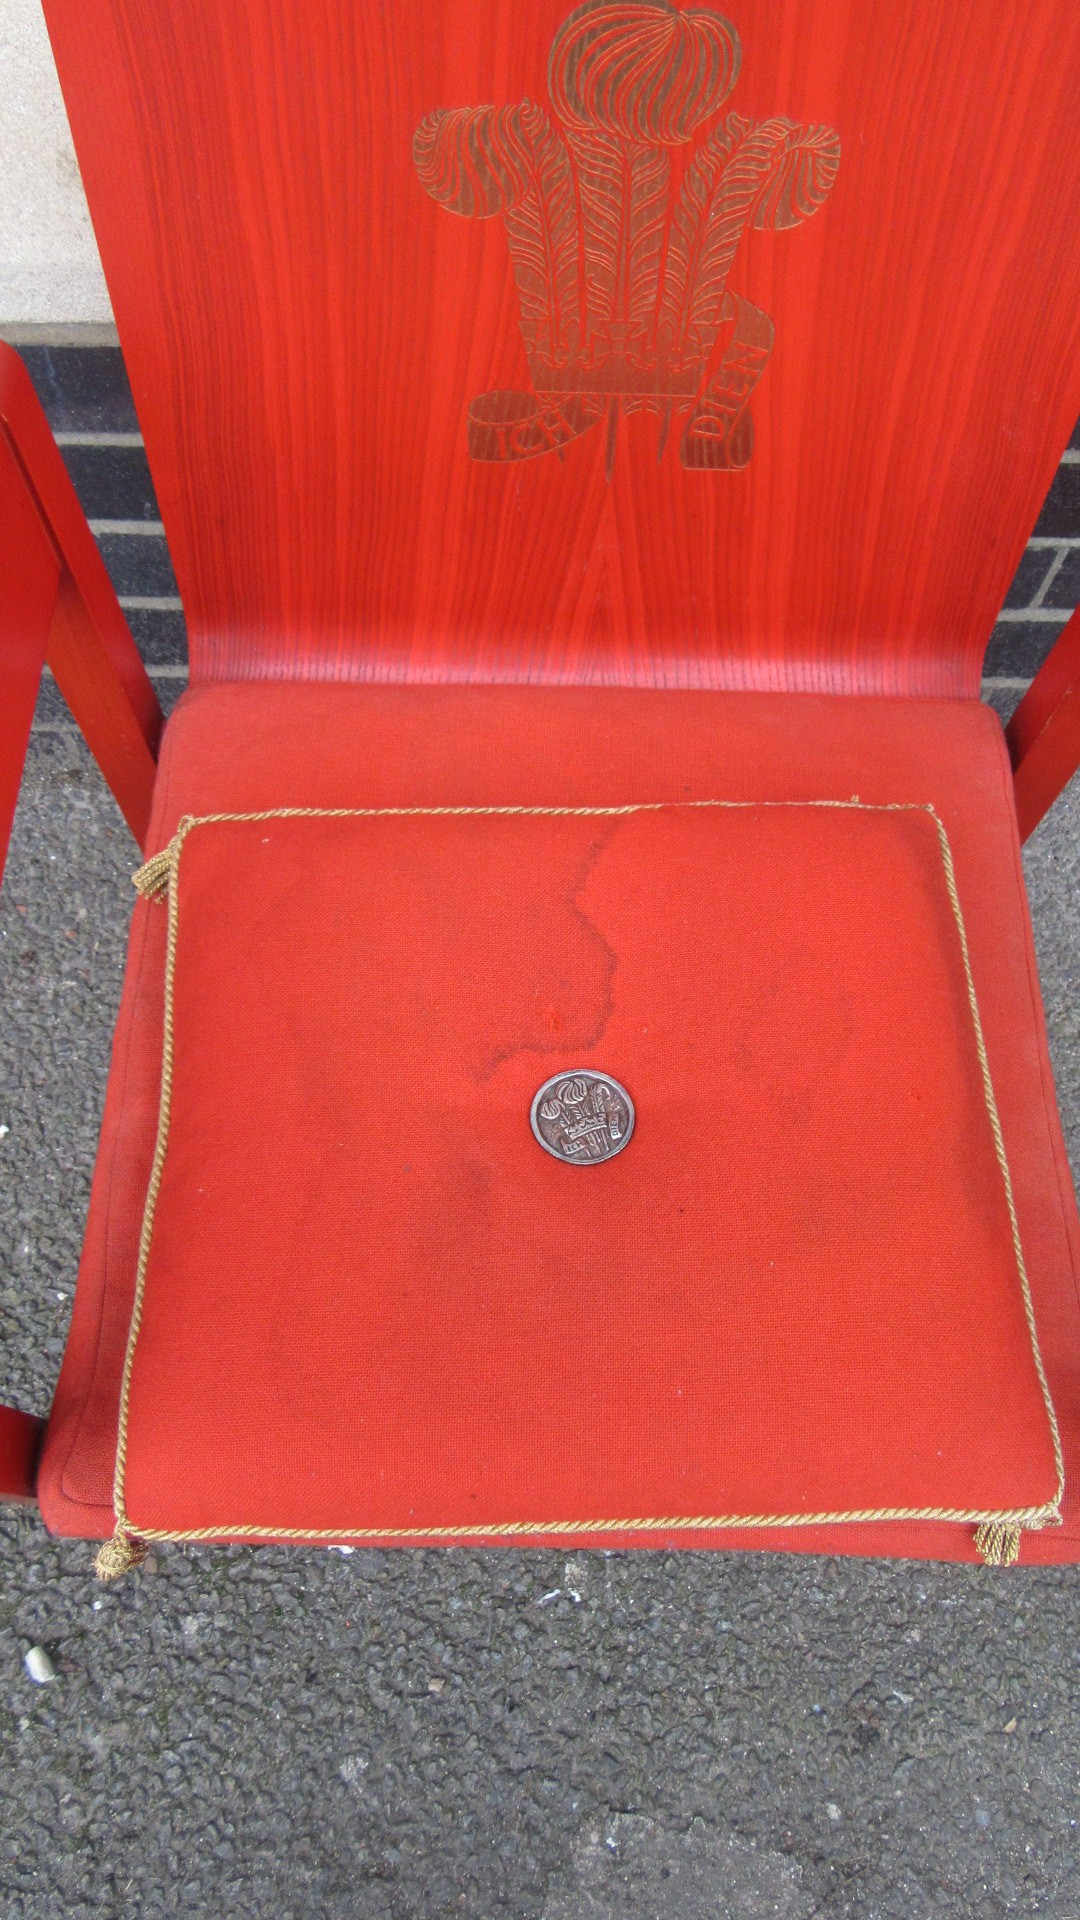 Vintage 1969 Prince Charles Investiture Chair Amp Cushion